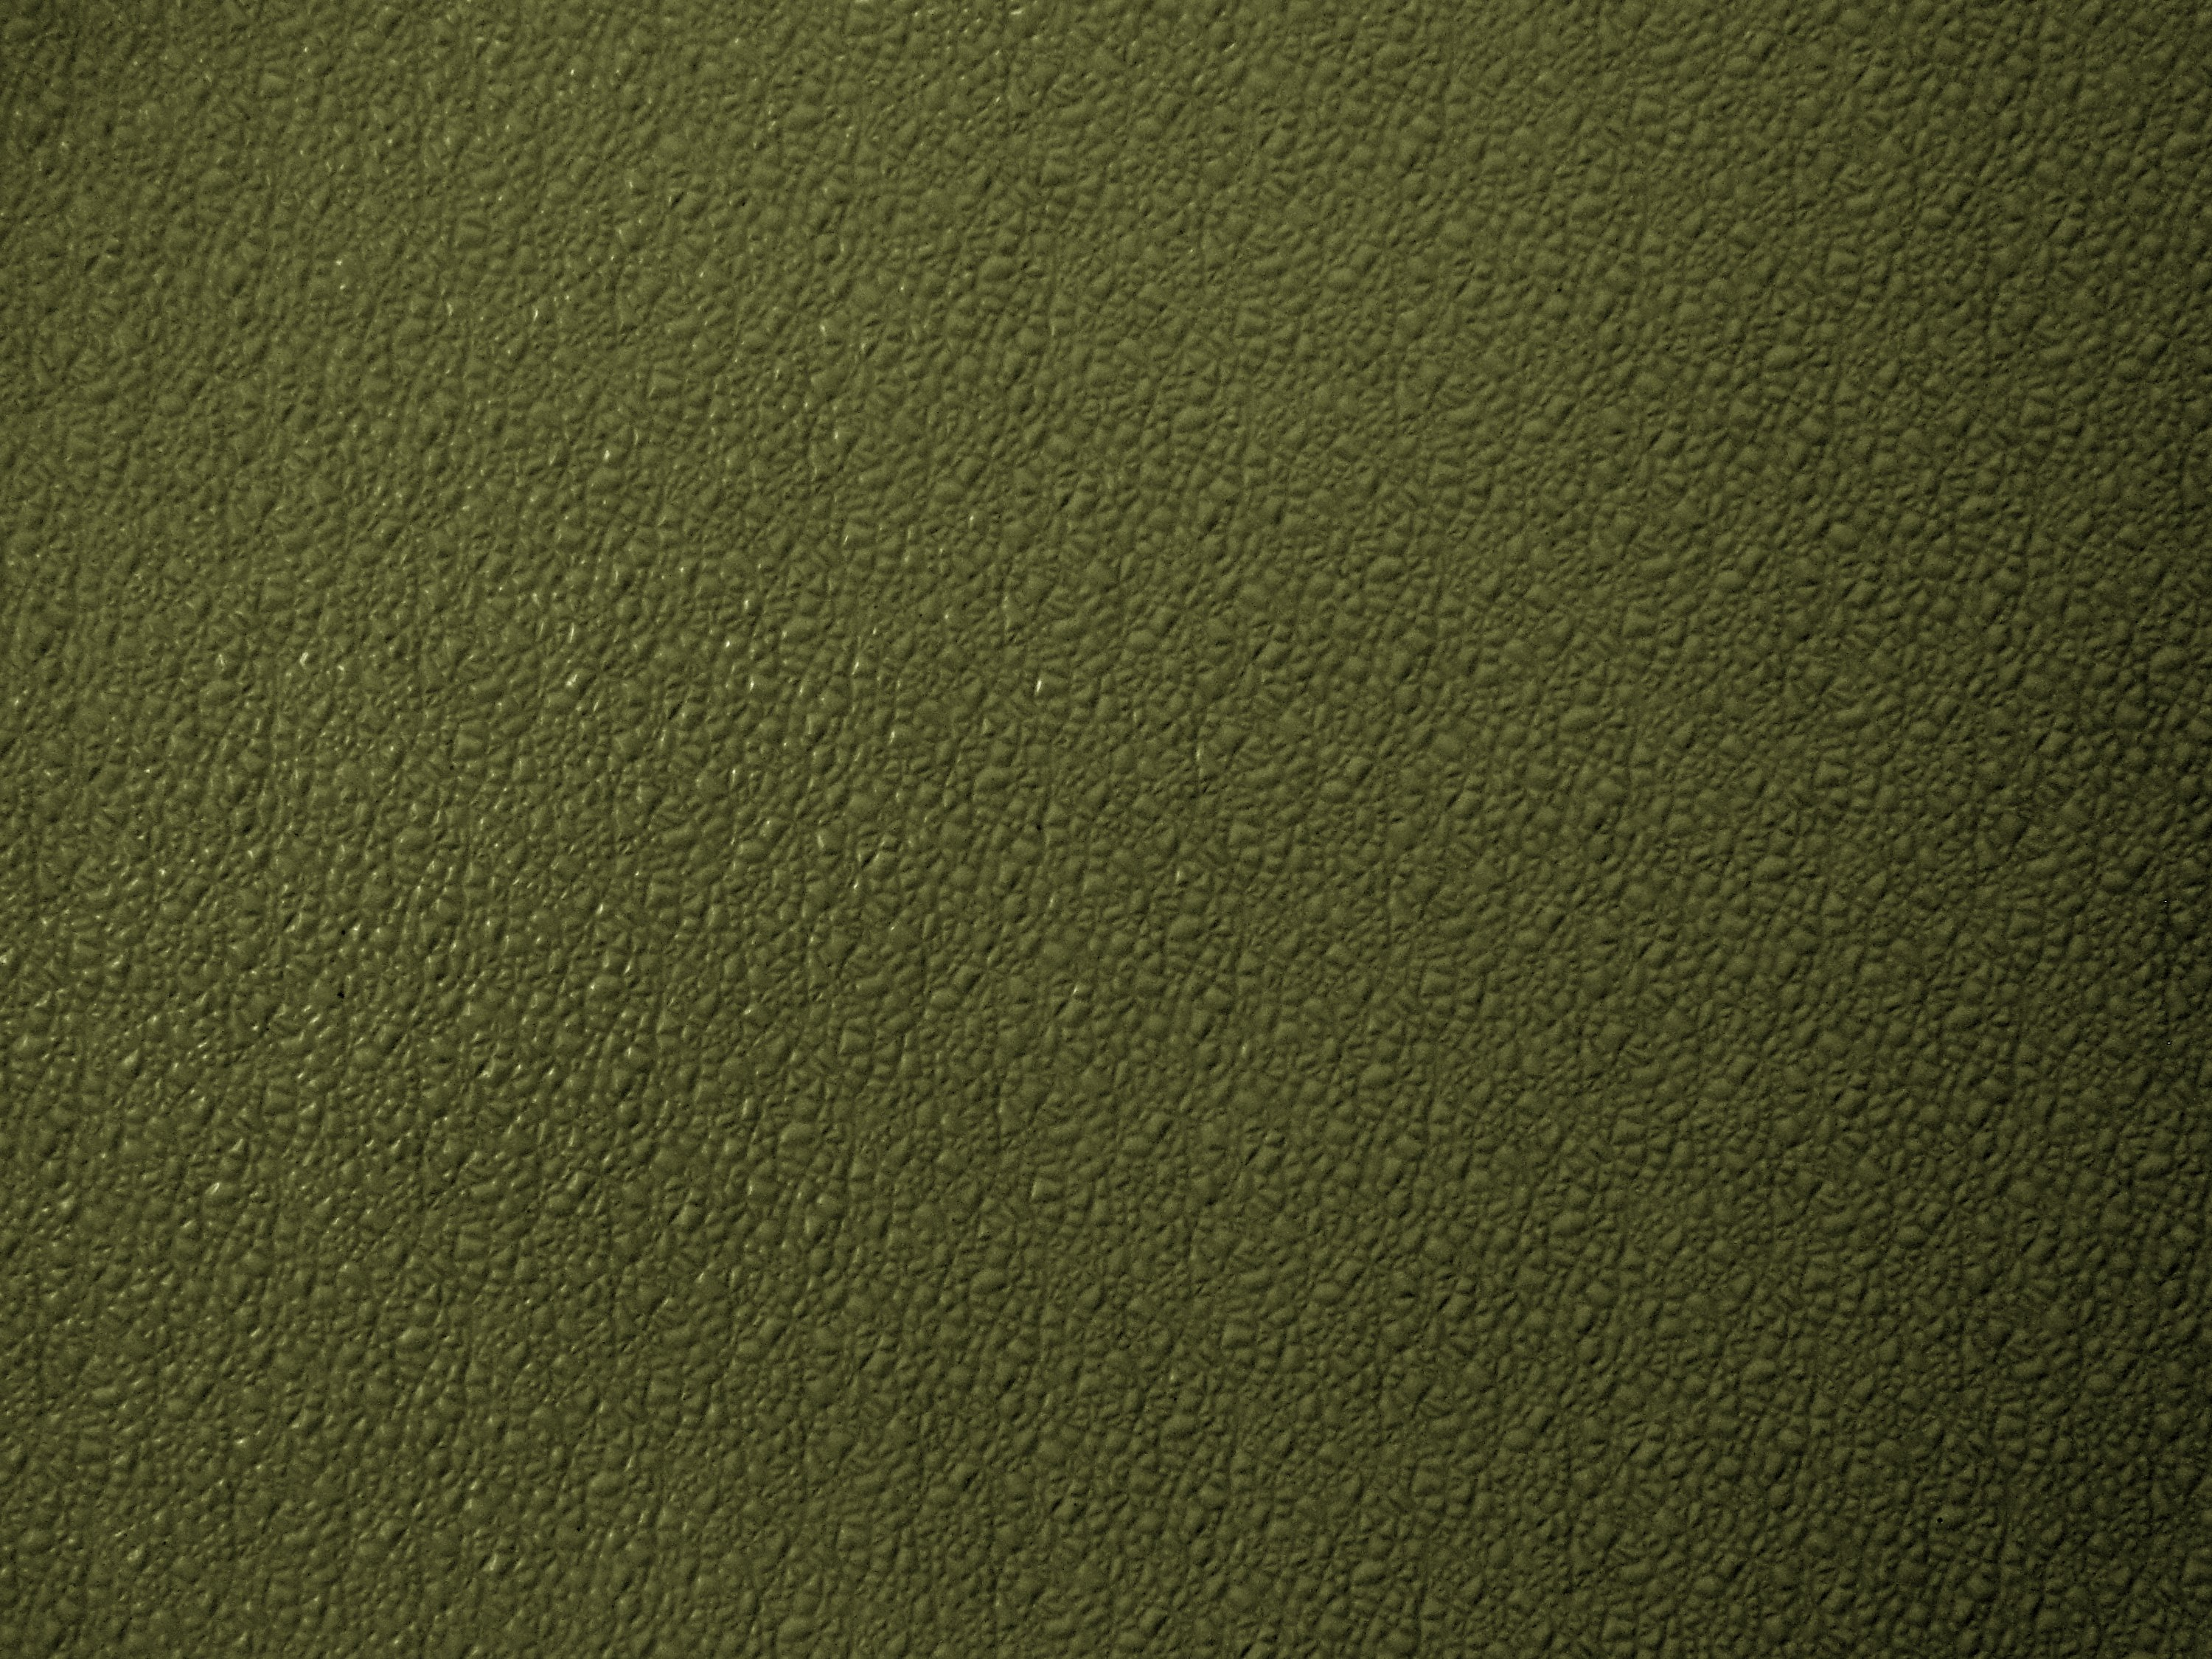 Bumpy Olive Green Plastic Texture Picture 3000x2250